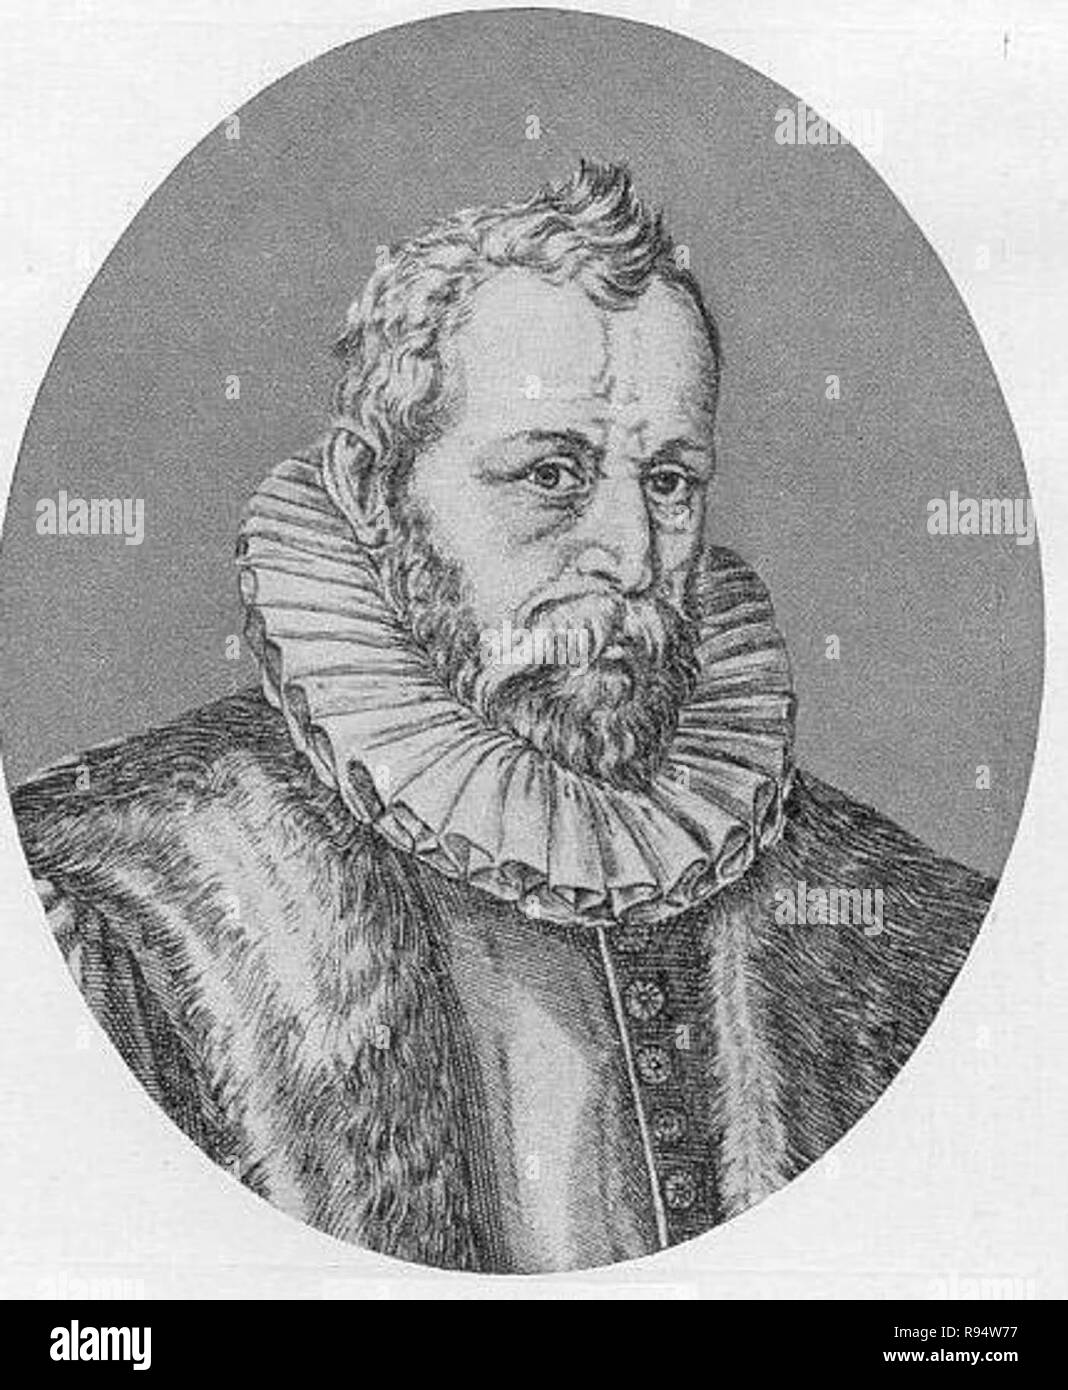 Justus Lipsius (Joest Lips or Joost Lips; 18 October 1547 – 23 March 1606)[1] was a Flemish philologist, philosopher and humanist. Lipsius wrote a series of works designed to revive ancient Stoicism in a form that would be compatible with Christianity. - Stock Image